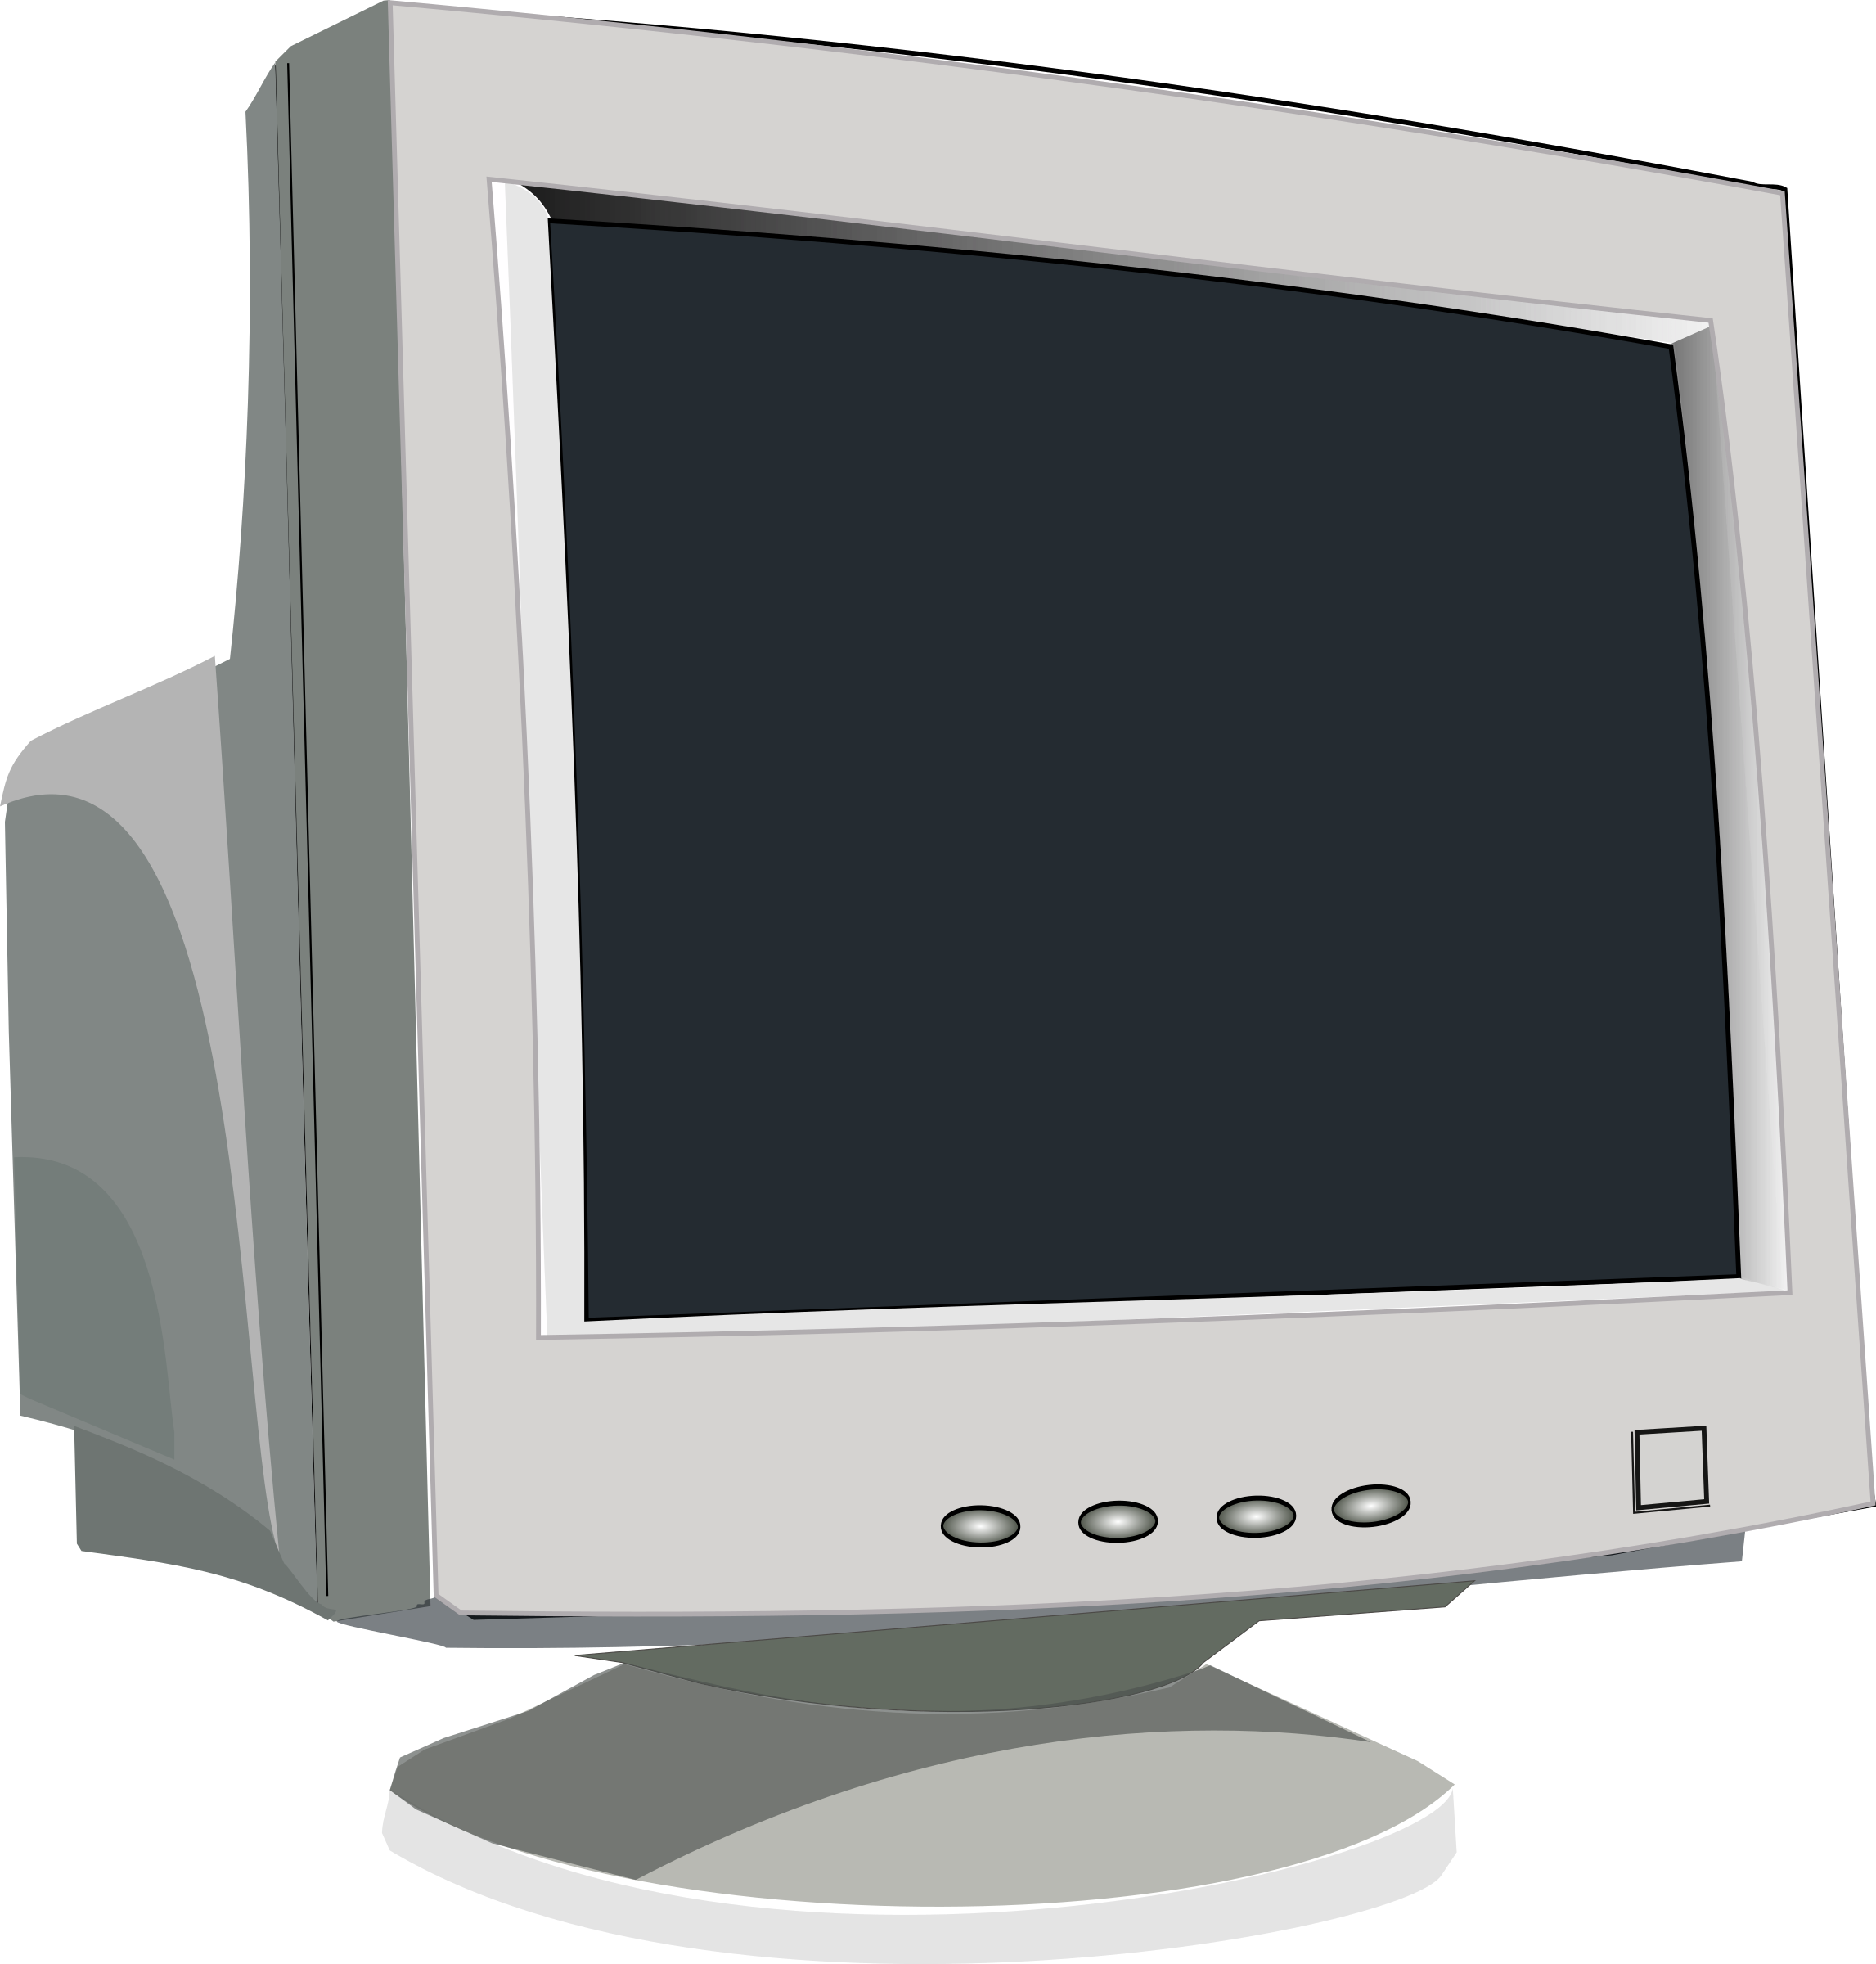 Old computer monitor png. Clipart crt big image